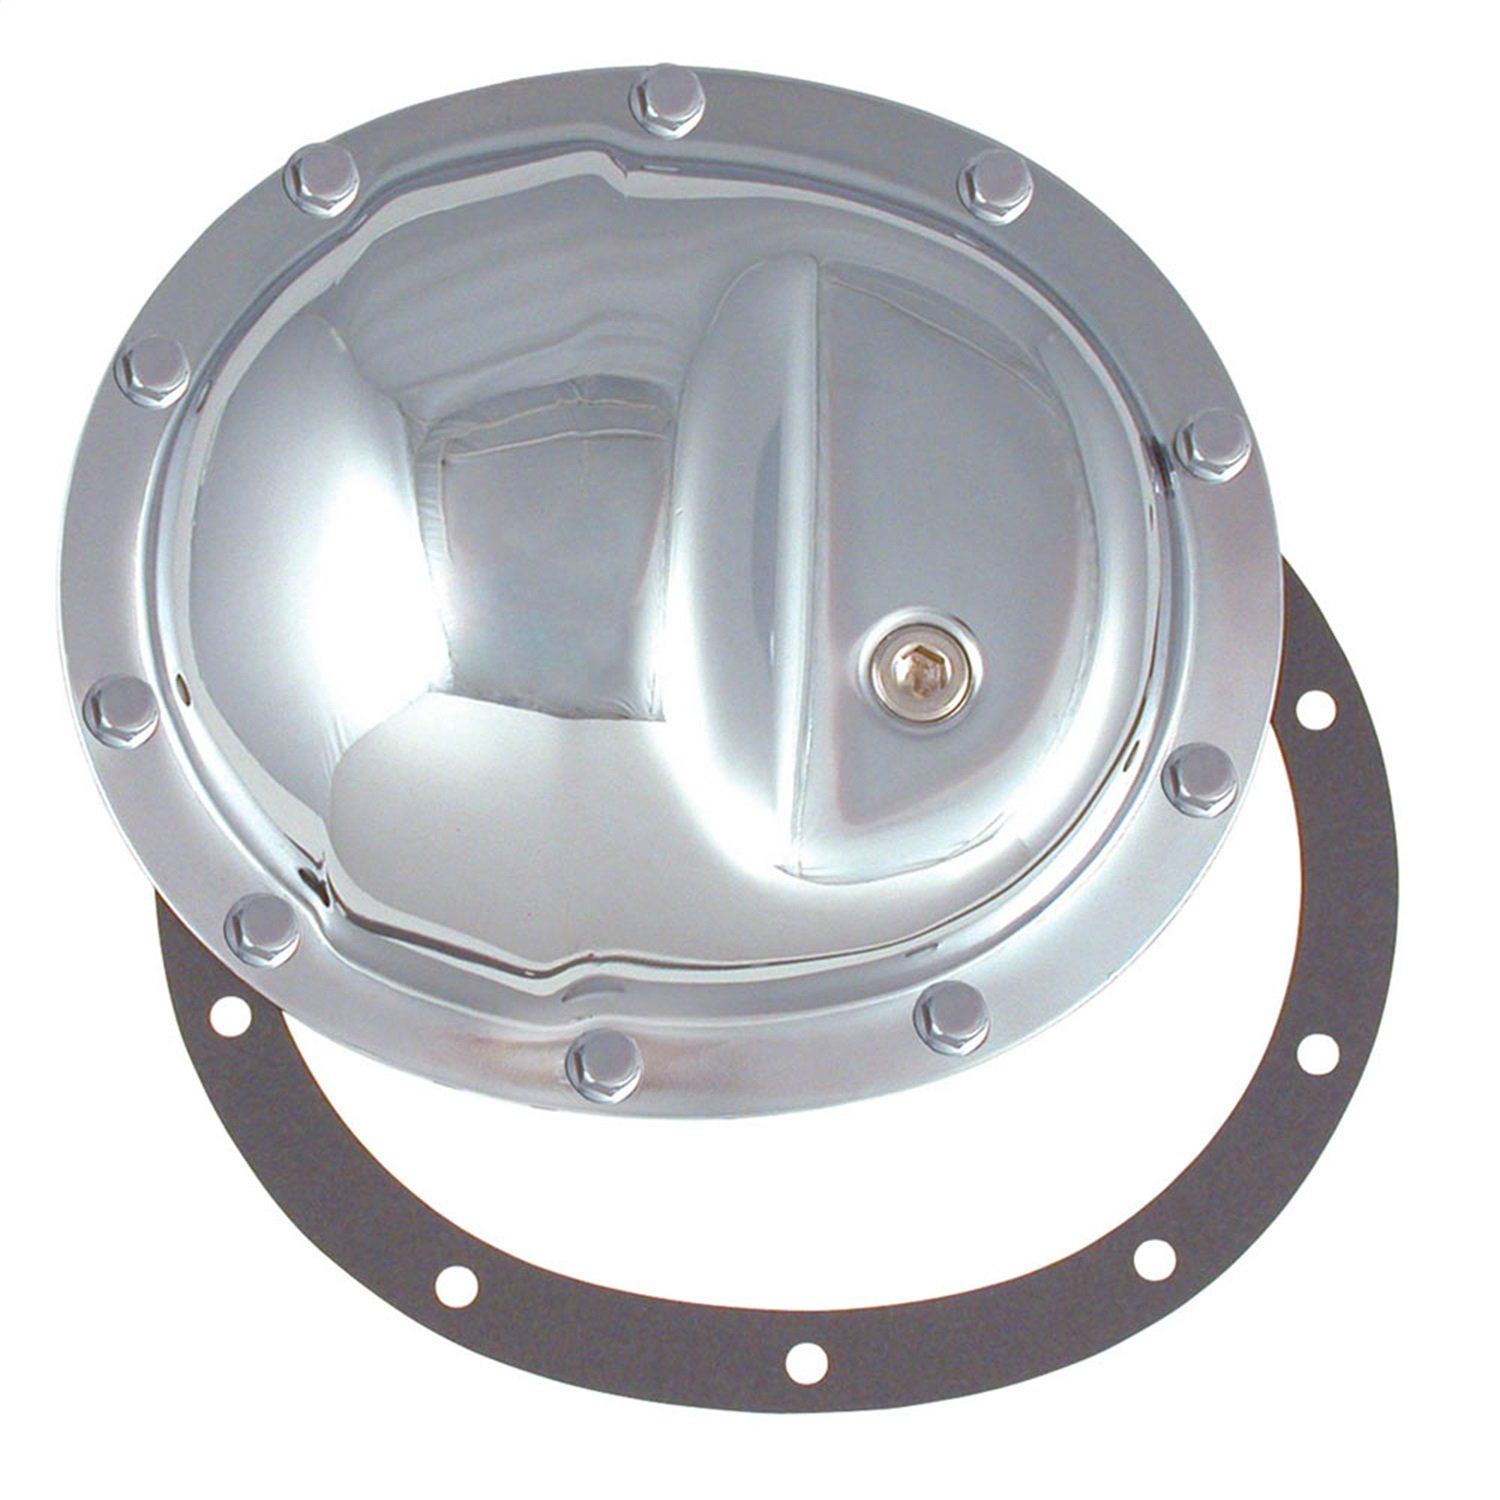 Spectre 6090 10-Bolt Differential Cover for Dana 35 Spectre Performance SPE-6090